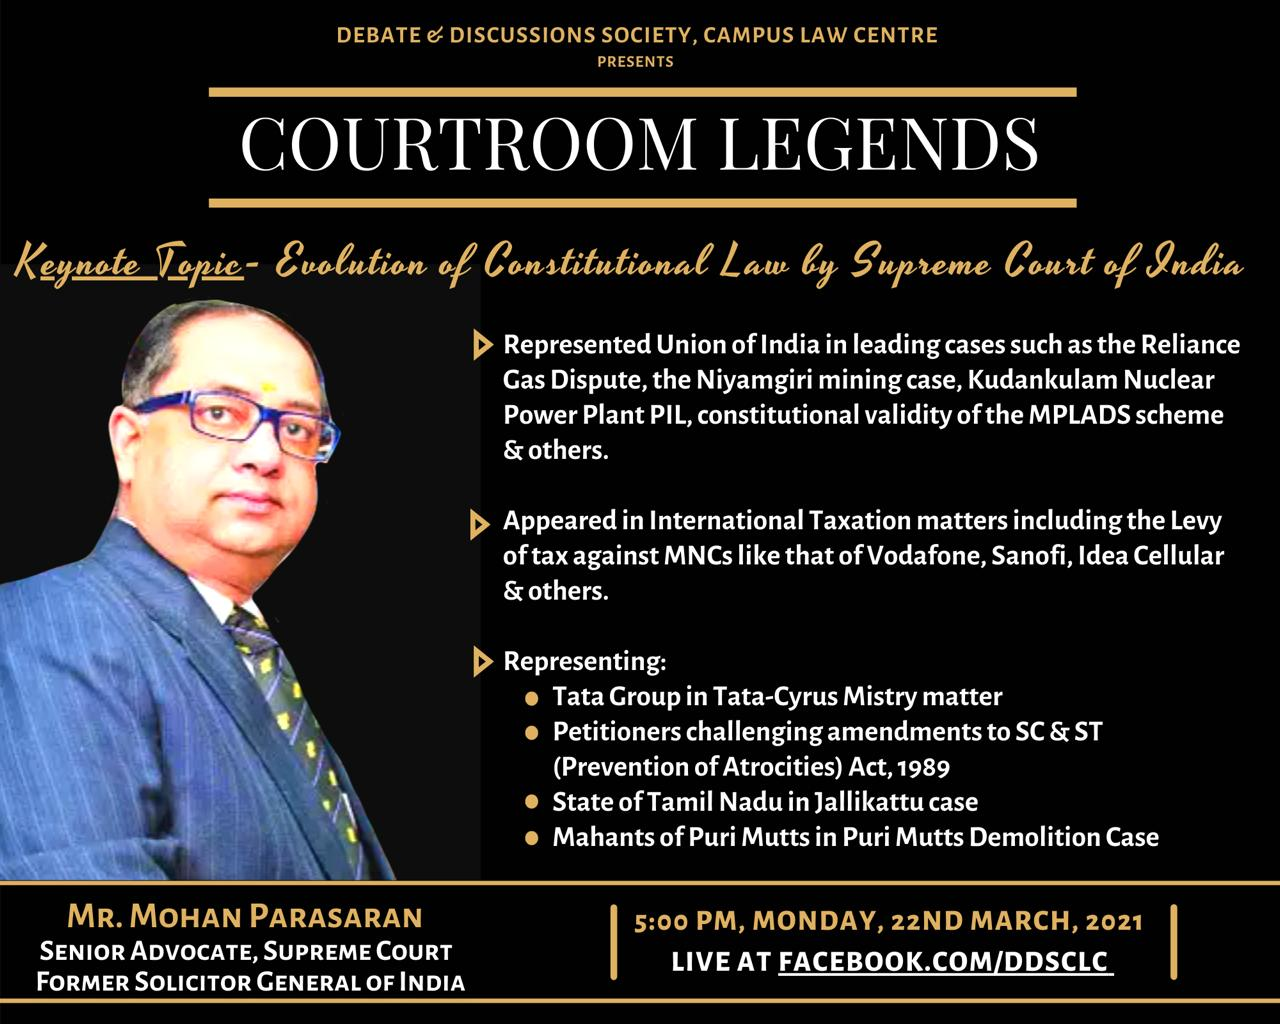 courtroom-legends-episode-3/